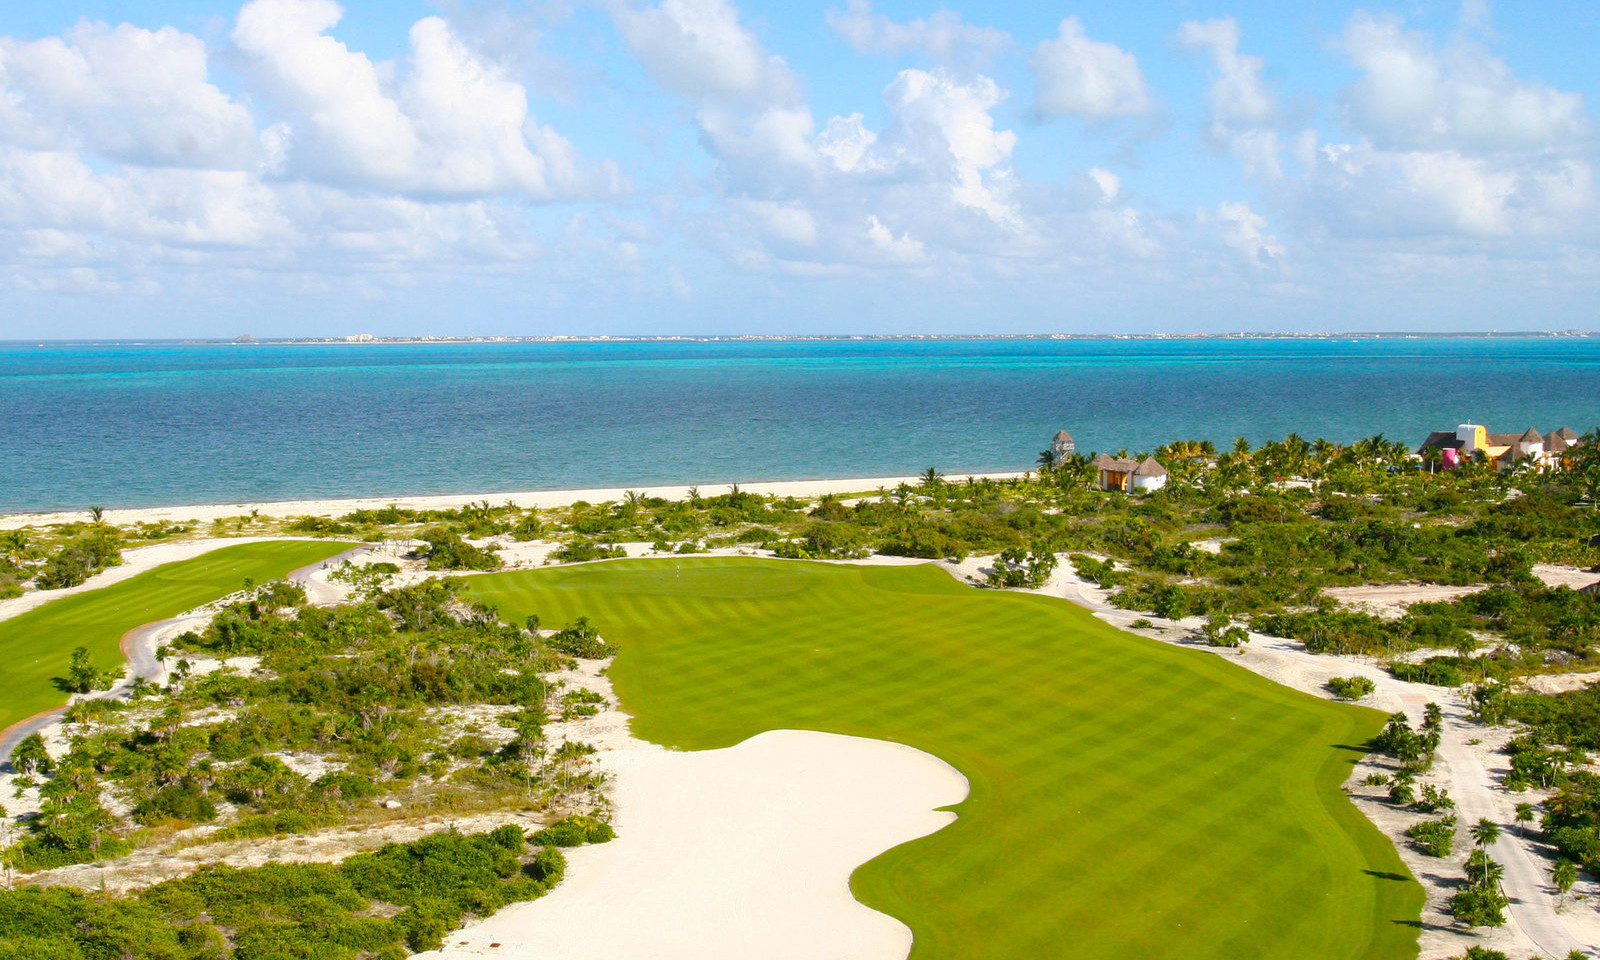 Golf course by the Caribbean Sea.jpg